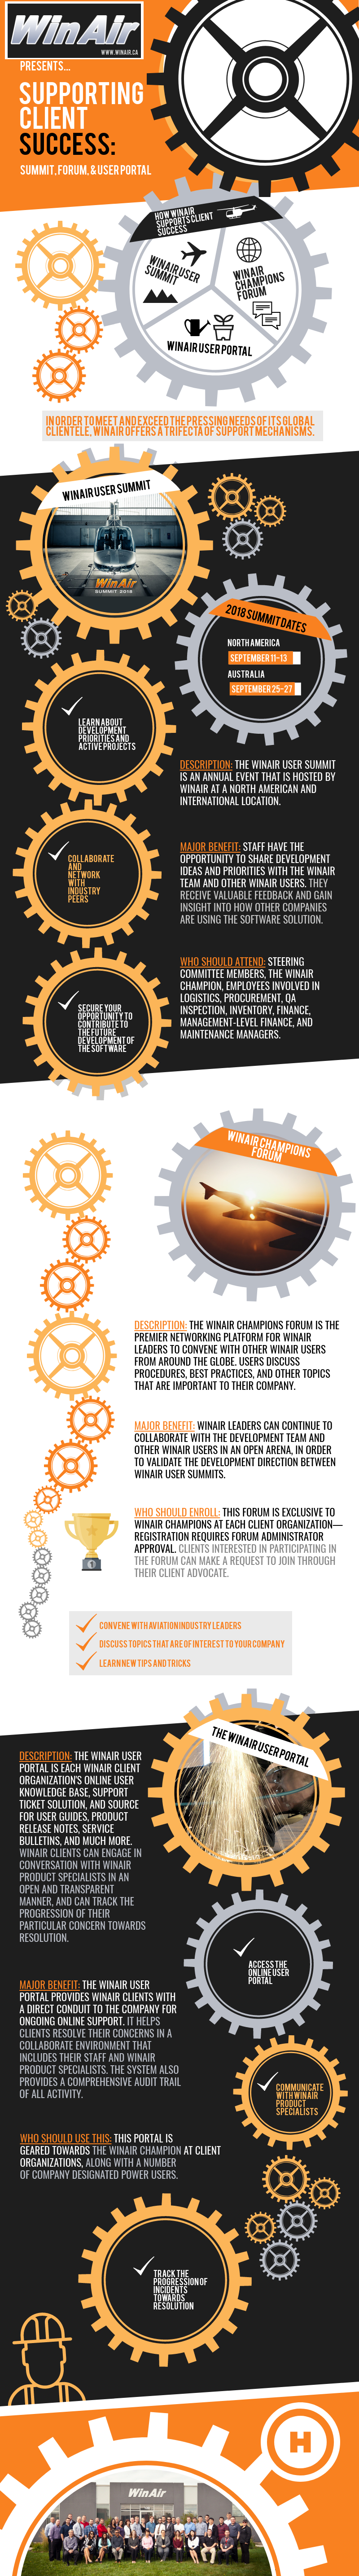 WinAir - Aviation Management Software - Supporting Client Success Infographic Image